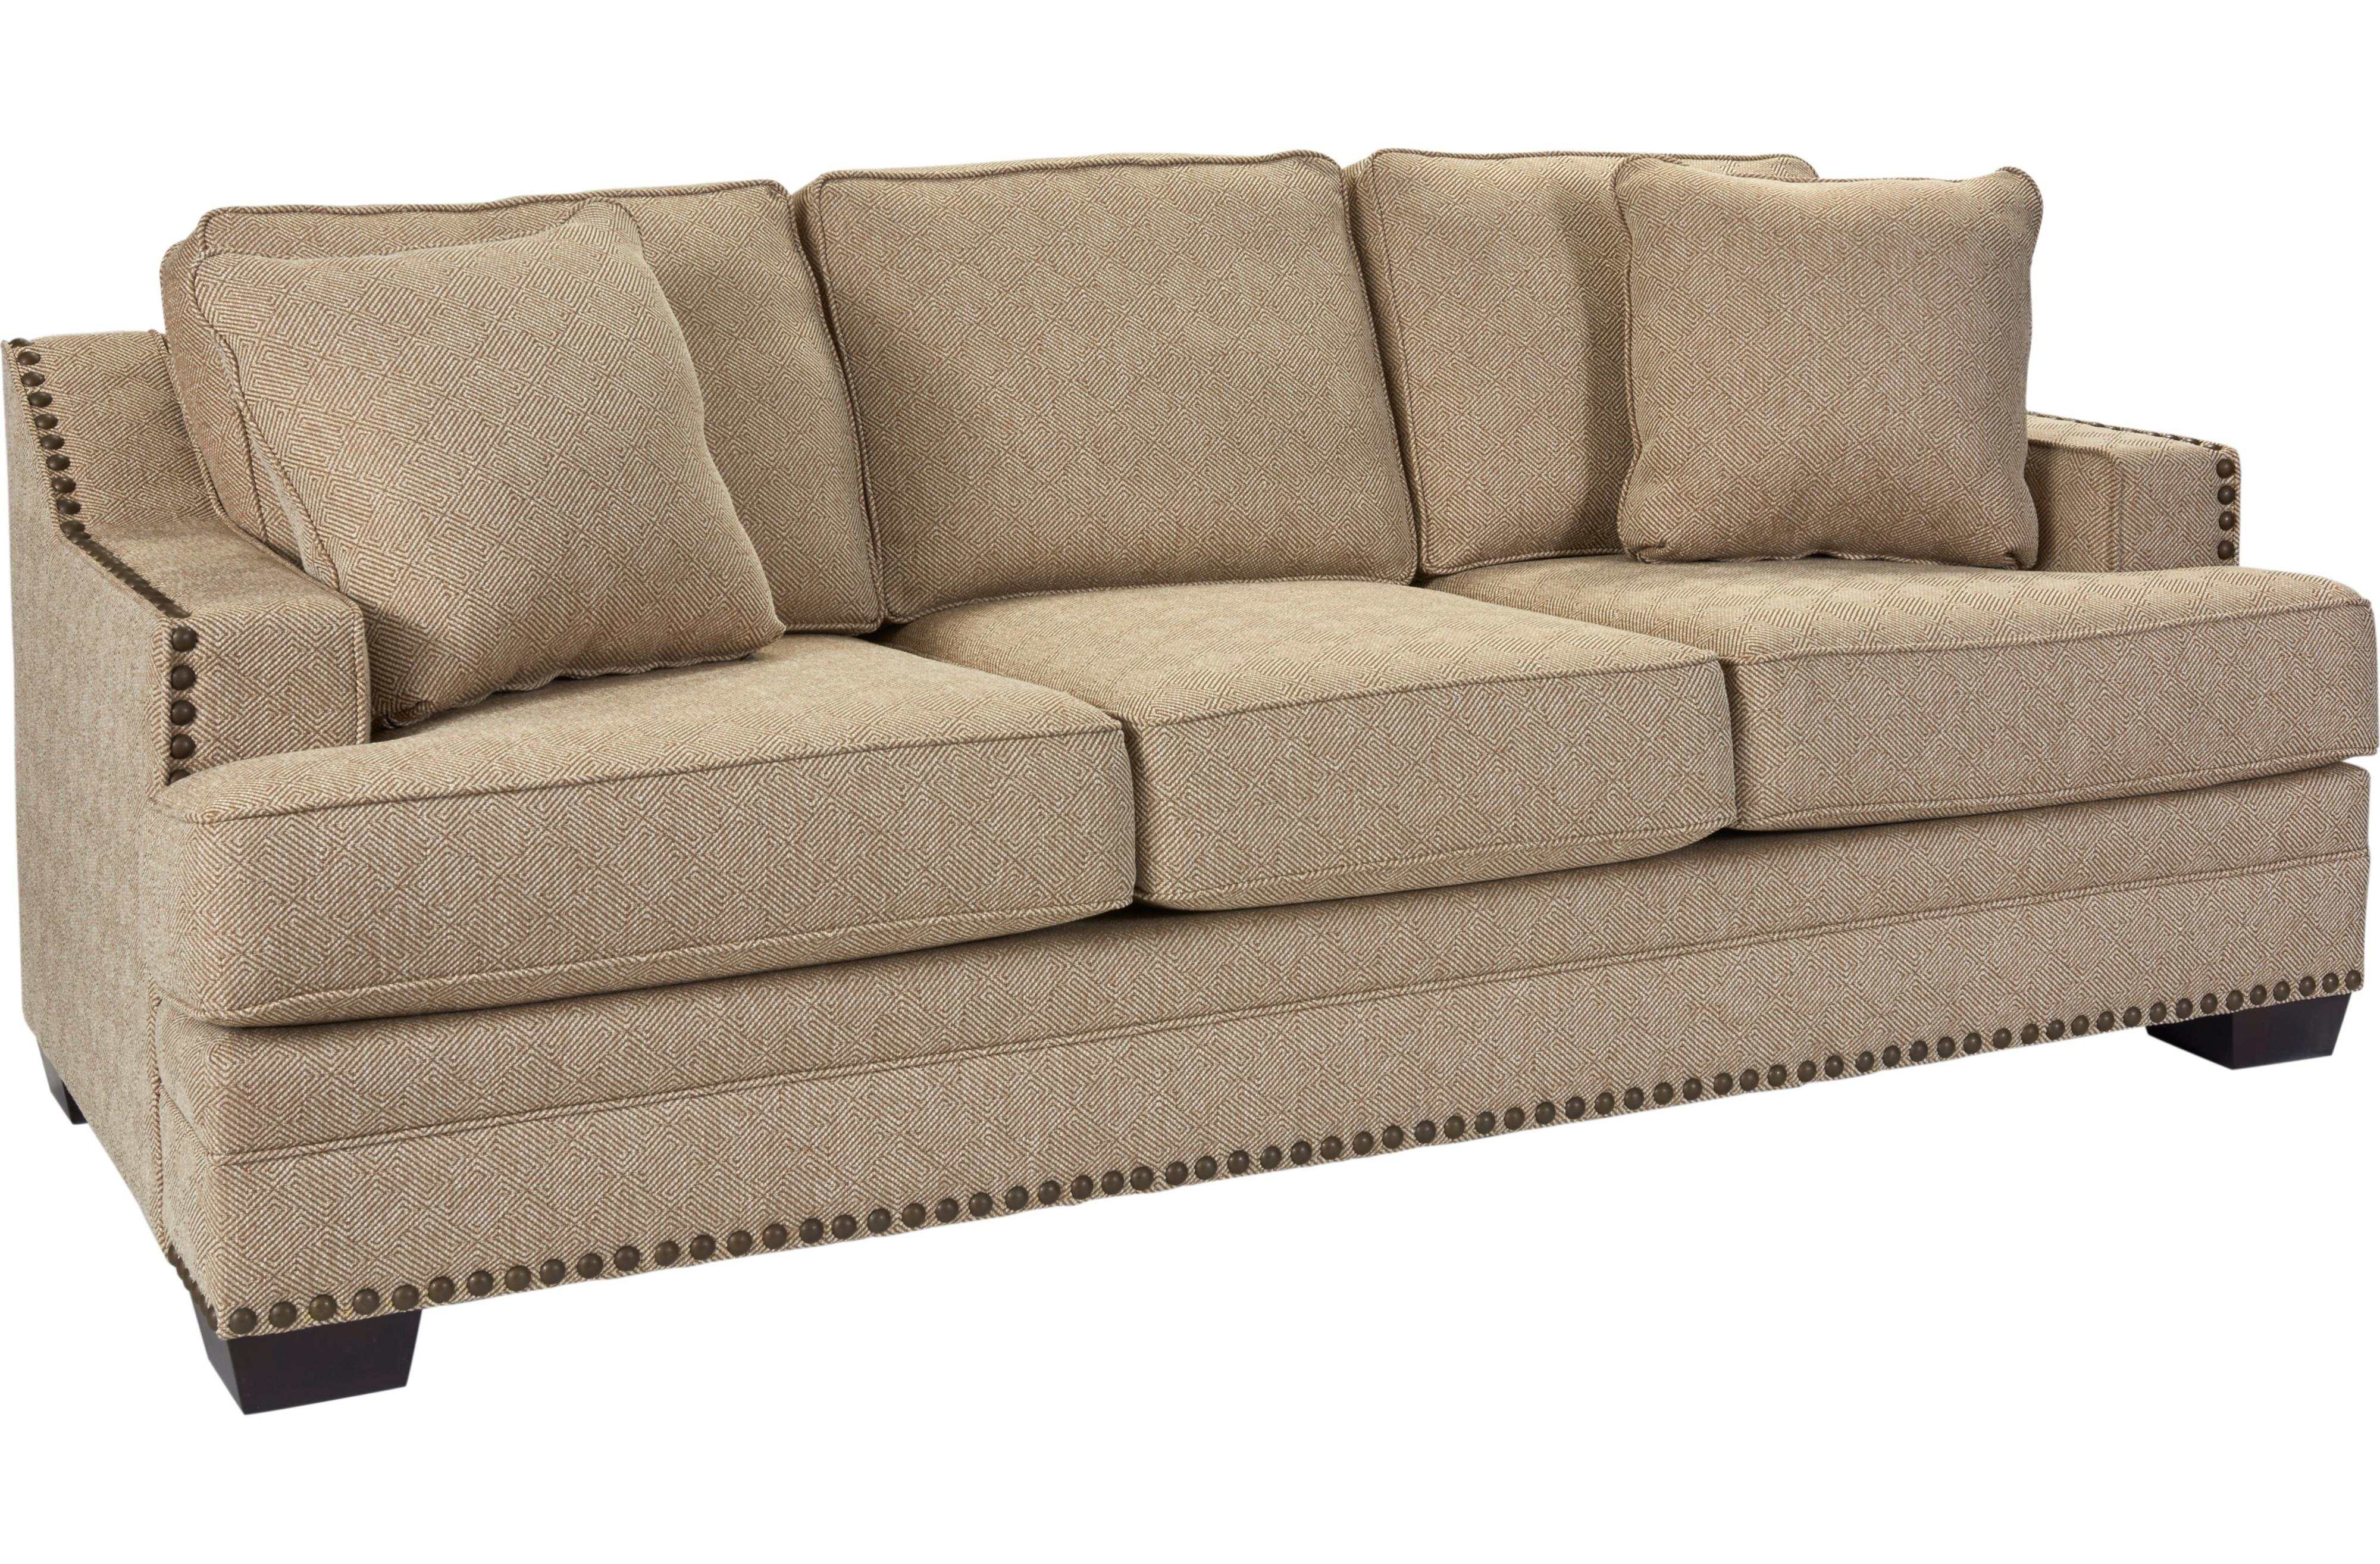 Broyhill Furniture Estes Park Contemporary Sofa With Nailhead Trim - Broyhill conversation sofa leather